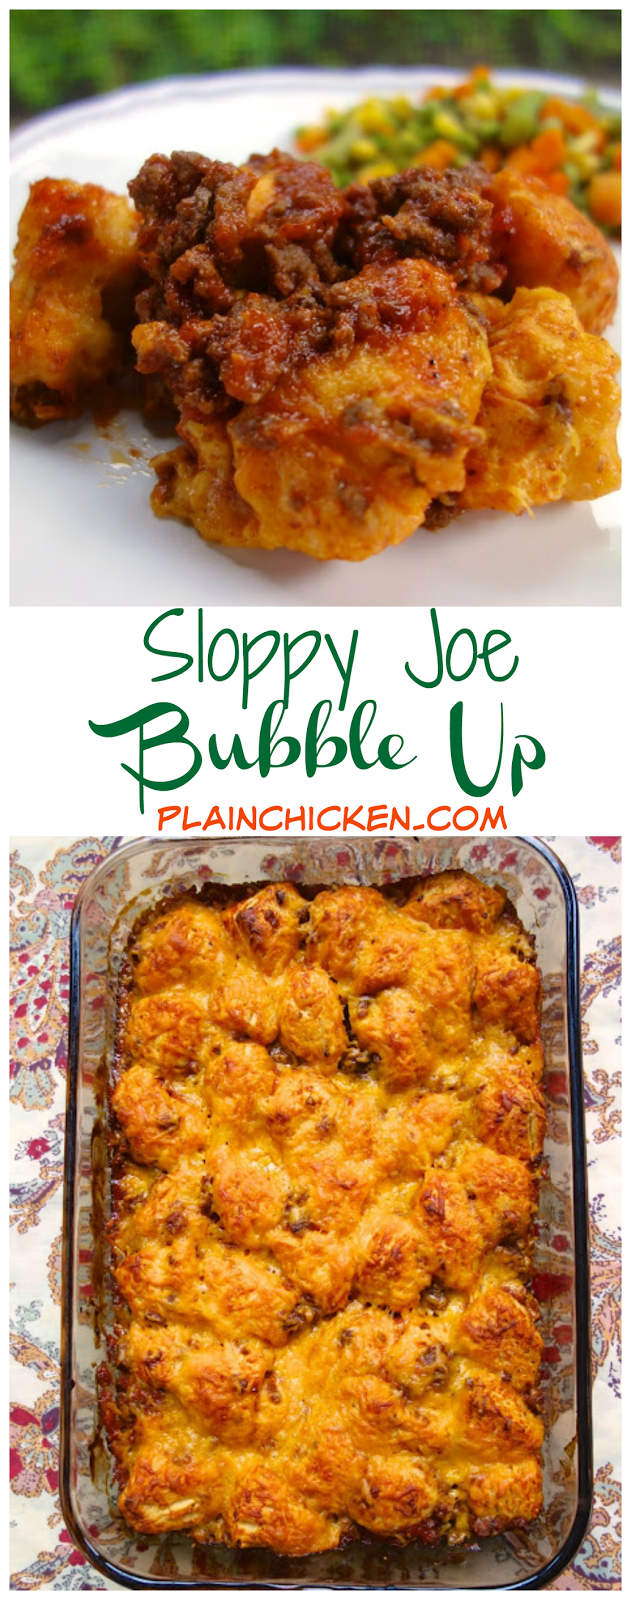 Sloppy Joe Bubble Up - homemade sloppy joe mixture tossed with chopped refrigerated biscuits and topped with cheese. Great twist to your usual sloppy joes. Tastes great! Even picky eaters like this casserole!!